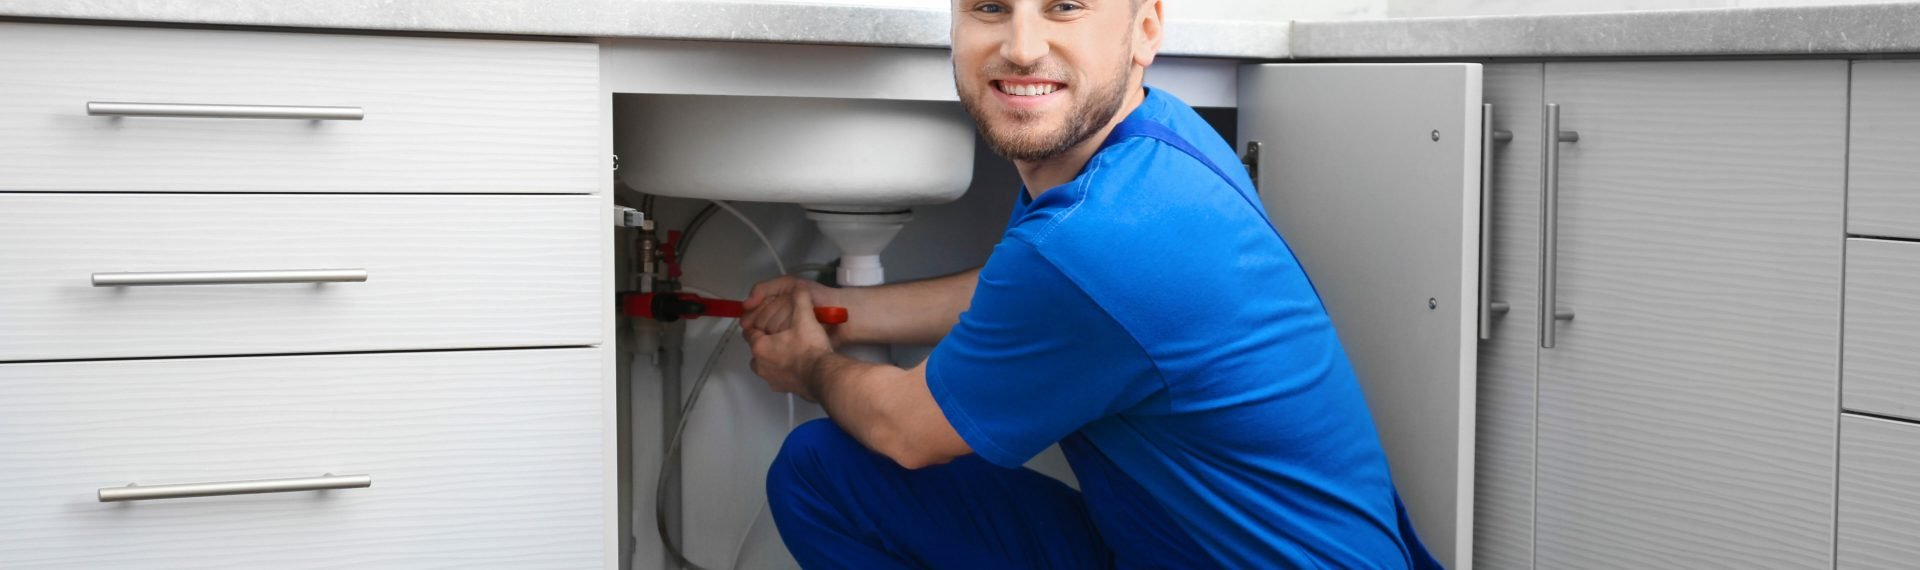 tradesmen hard hat plumber